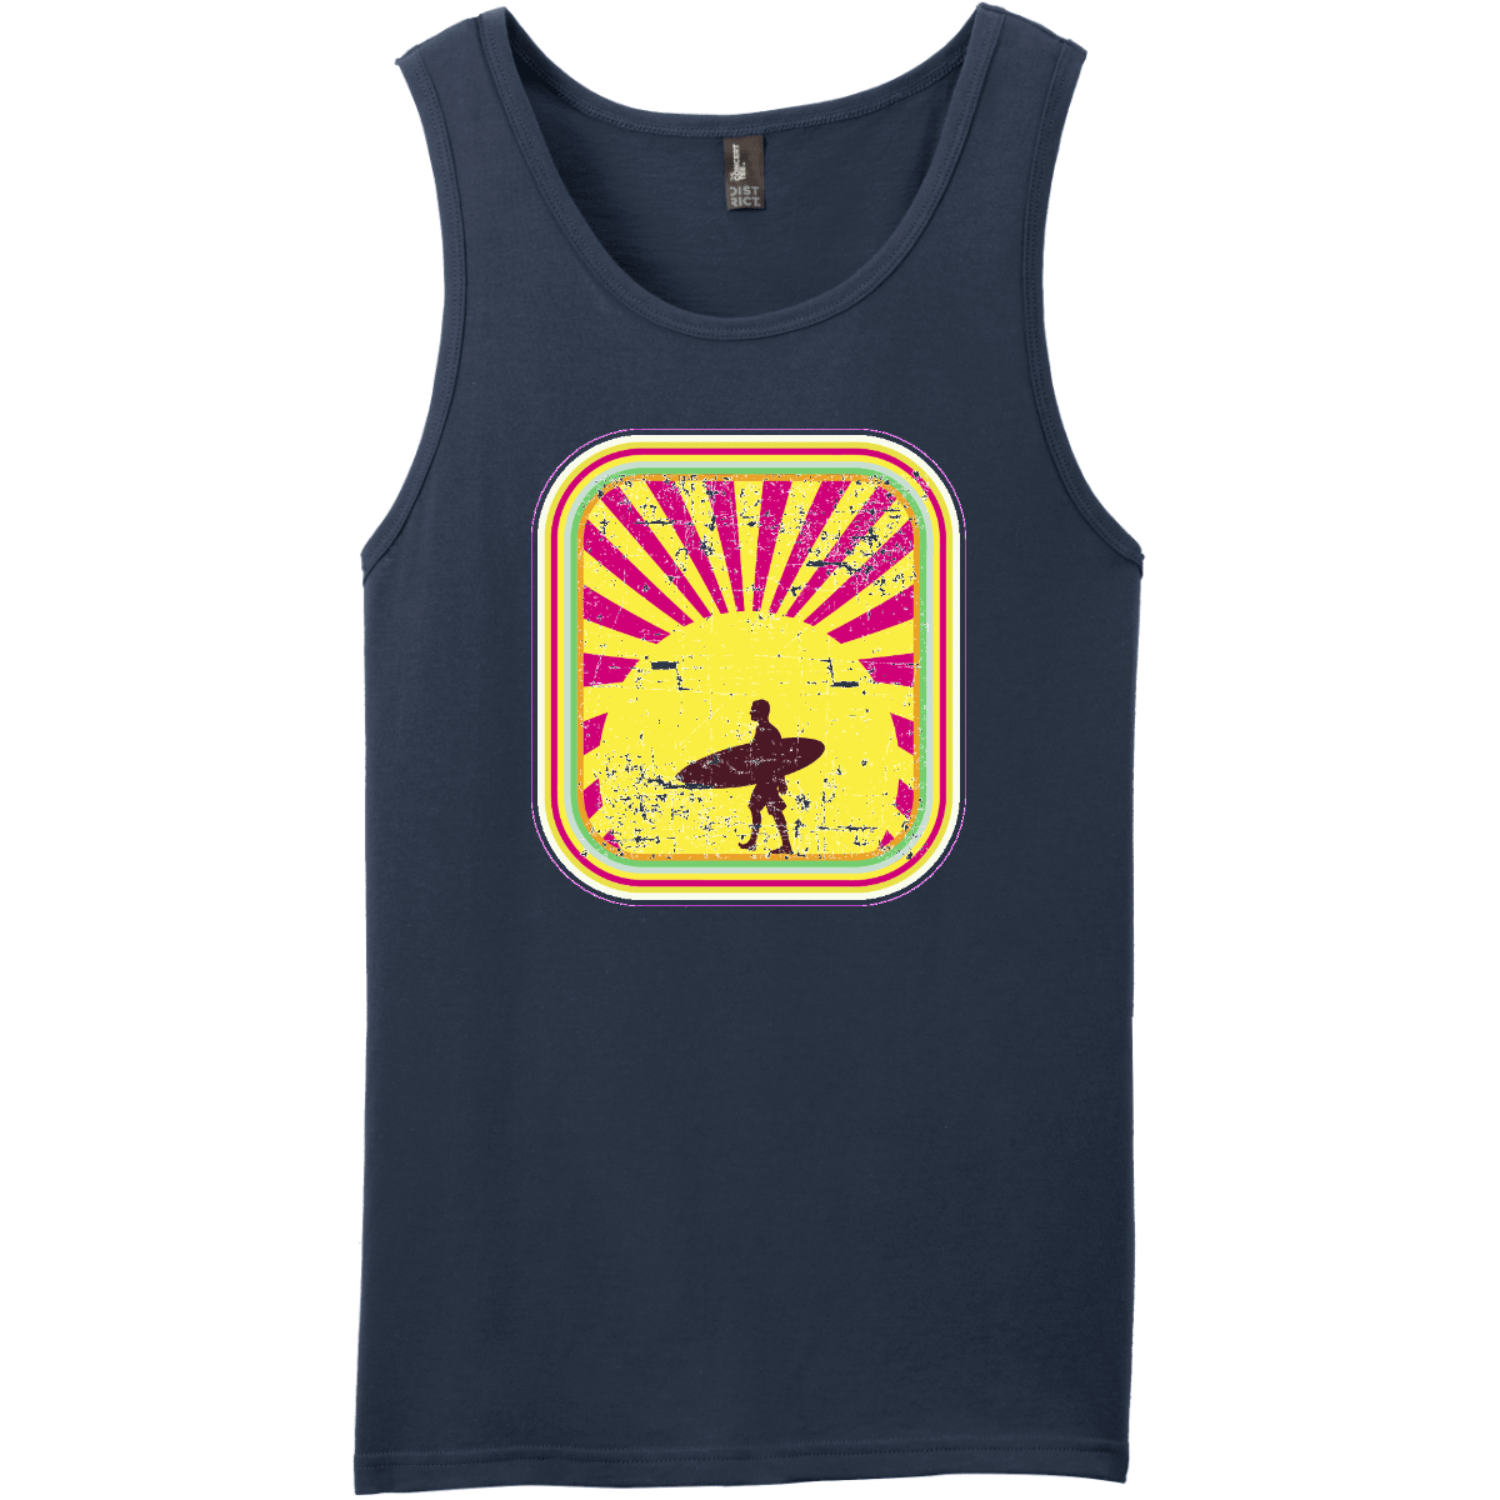 Surfer In The Retro Sunset Tank Top New Navy District Concert Tank Top DT5300